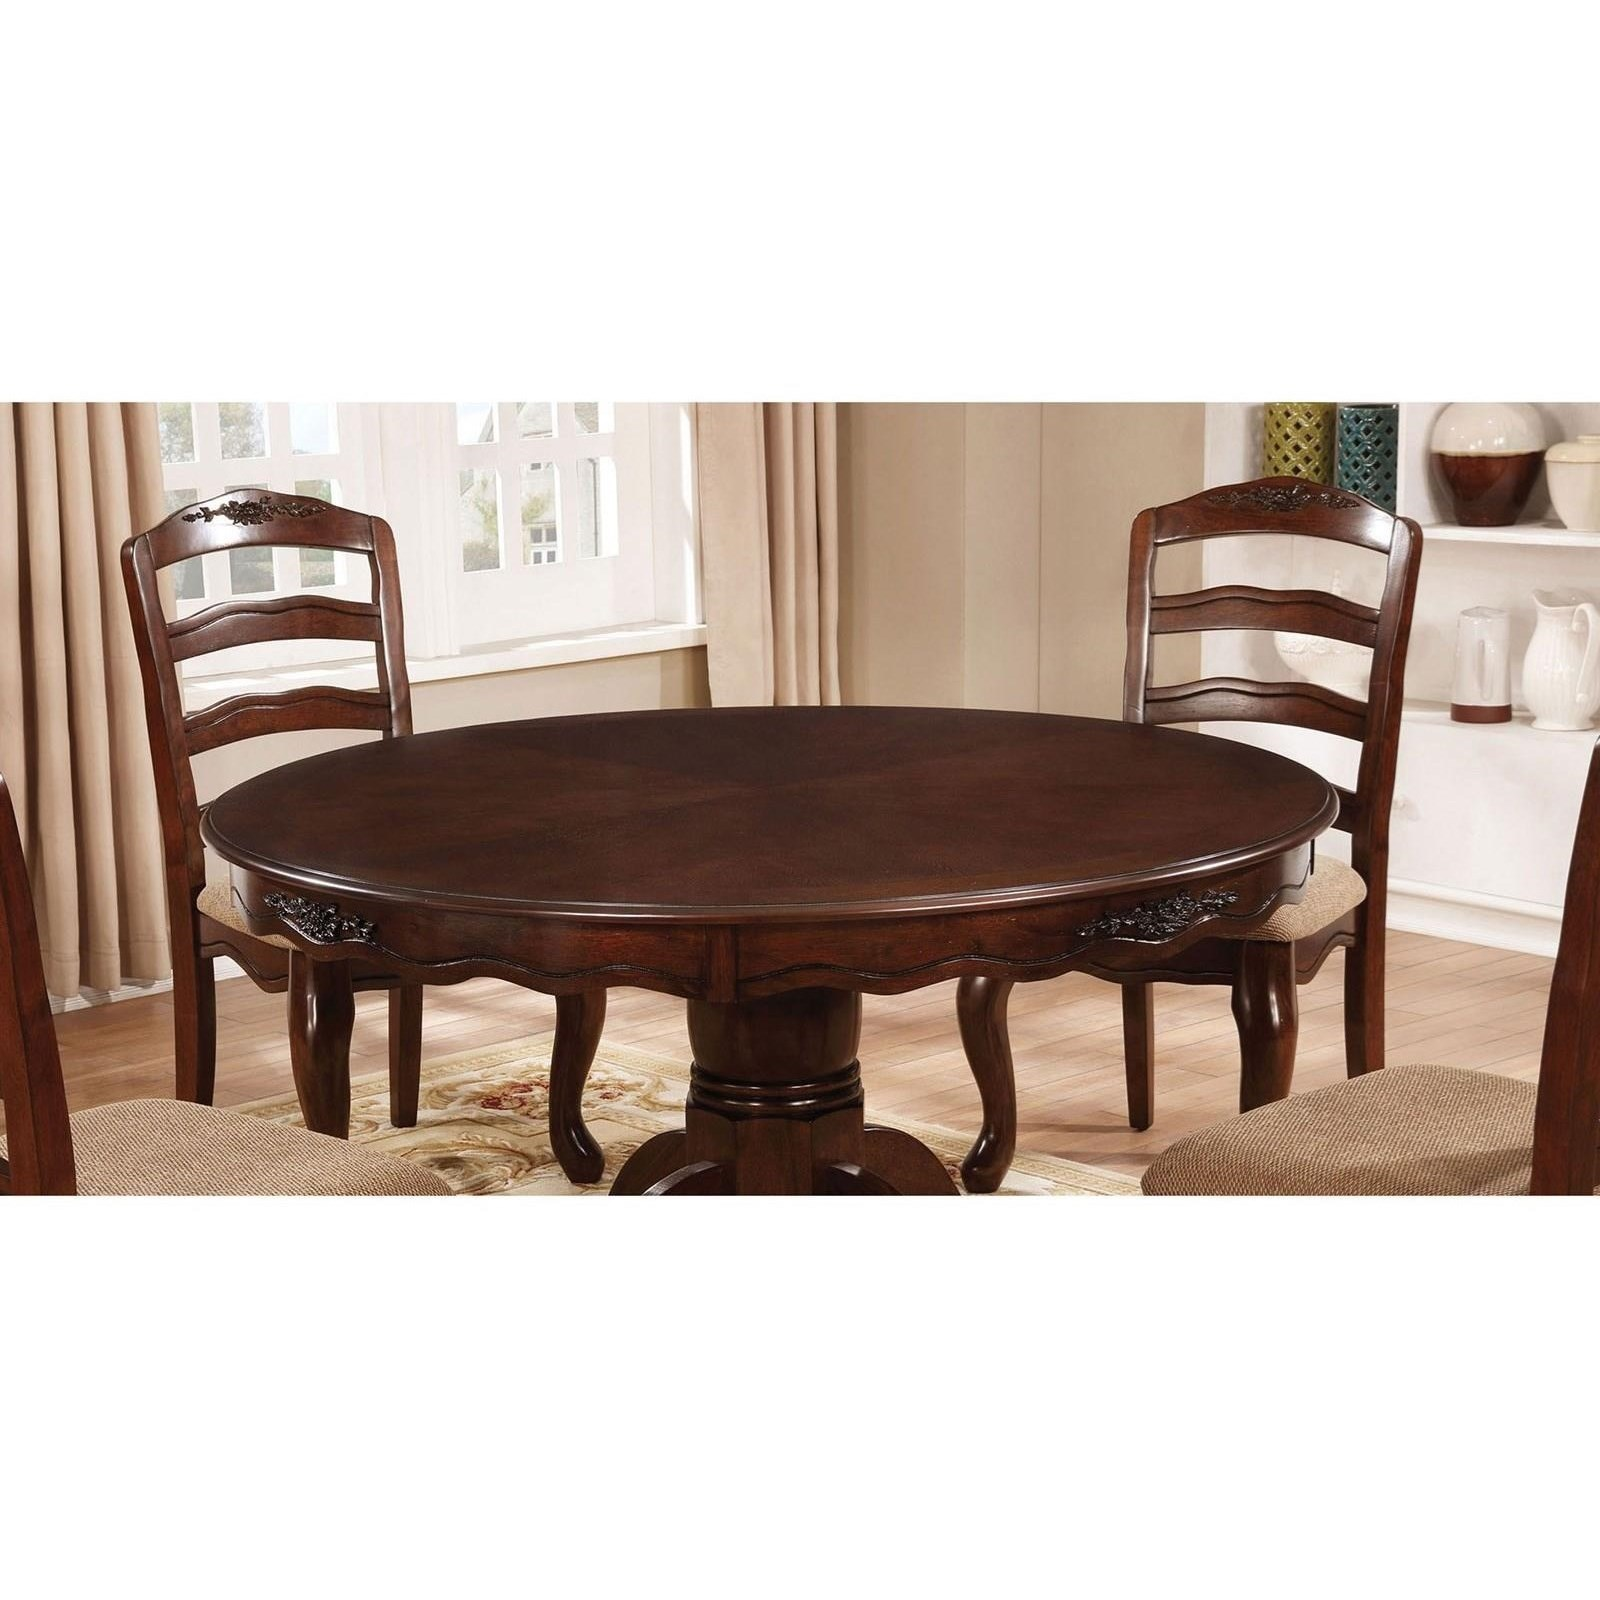 America Townsville CM3109T-5PC Traditional 5 Piece Dining